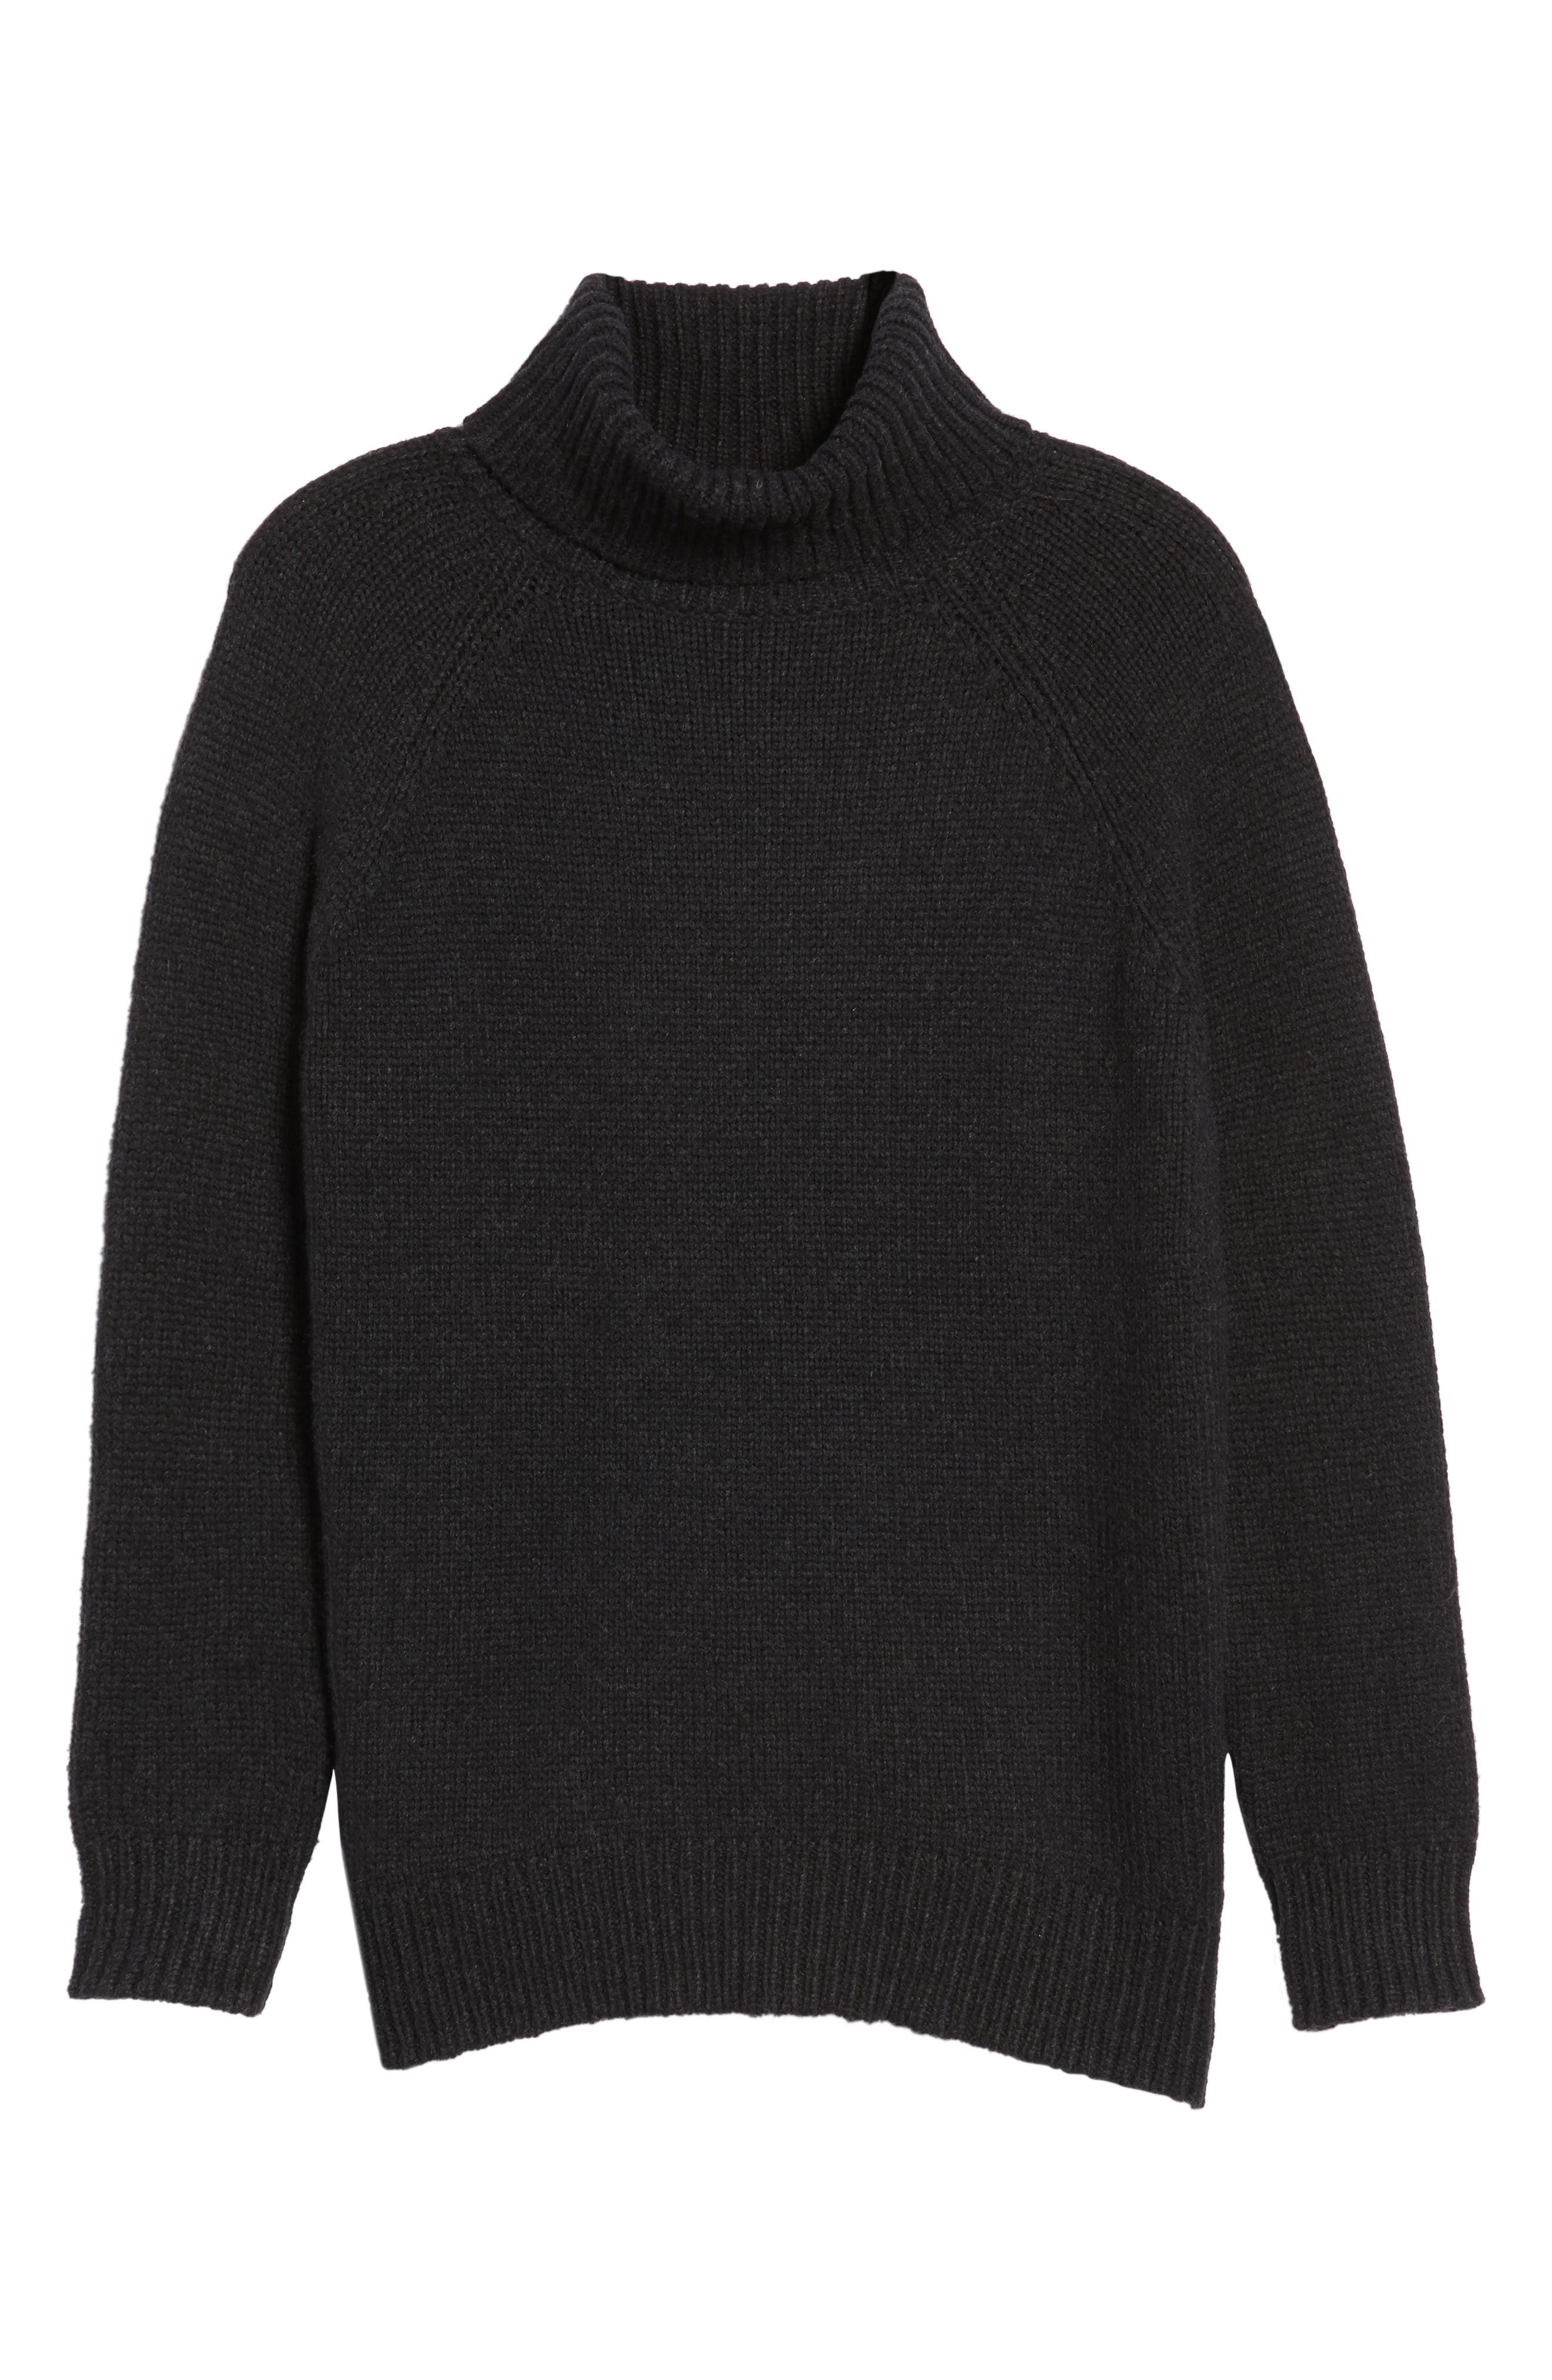 Textured Turtleneck Sweater,                             Alternate thumbnail 6, color,                             025